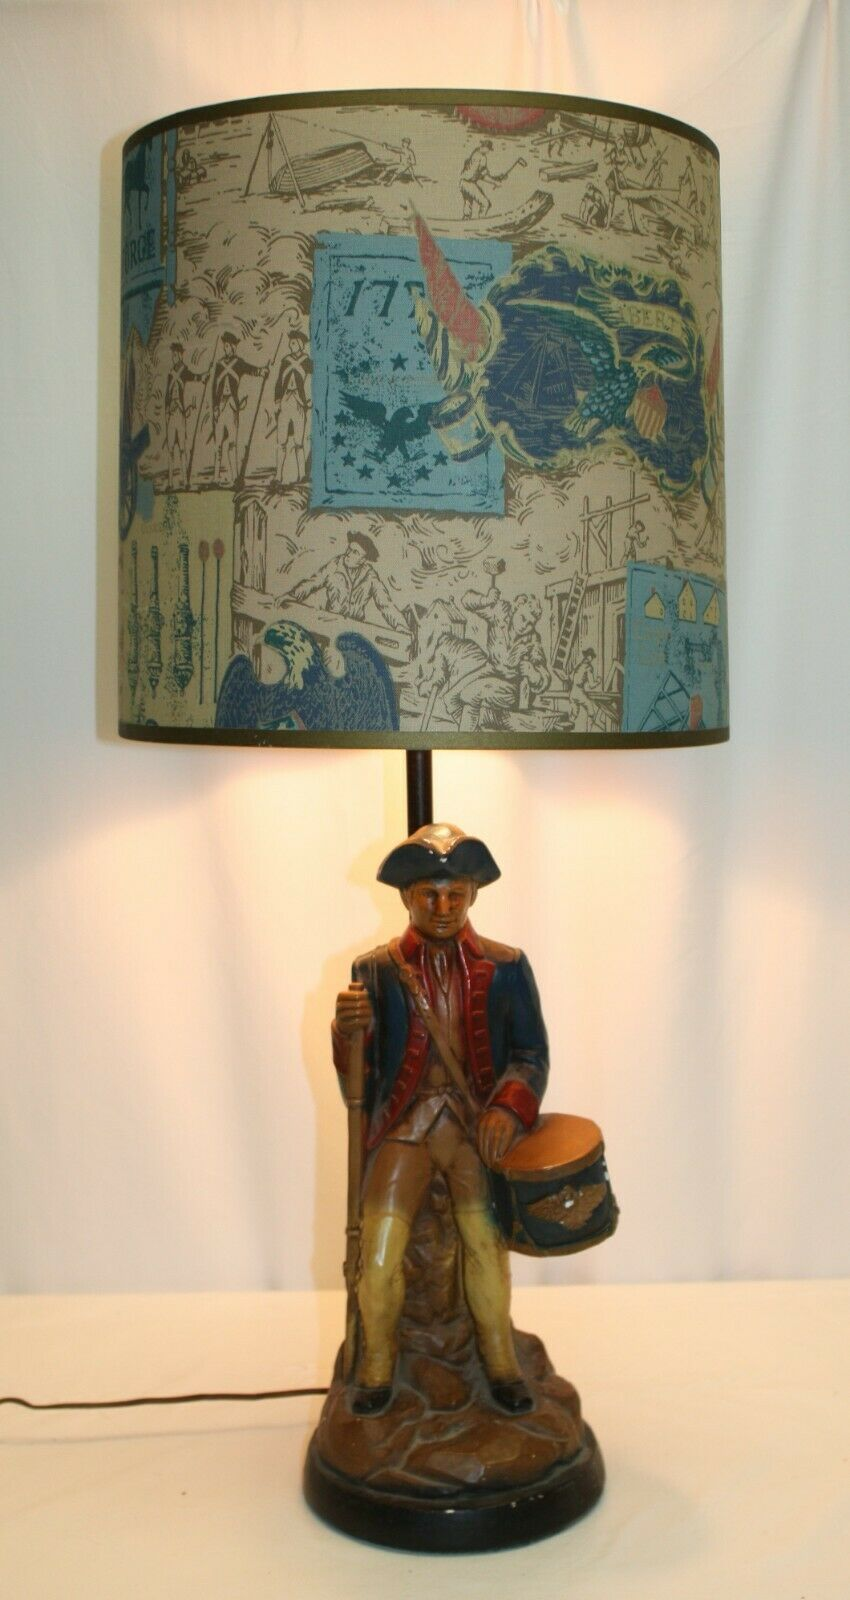 Primary image for Plasto Mfg Co Lamp 1960 Revolutionary War Soldier